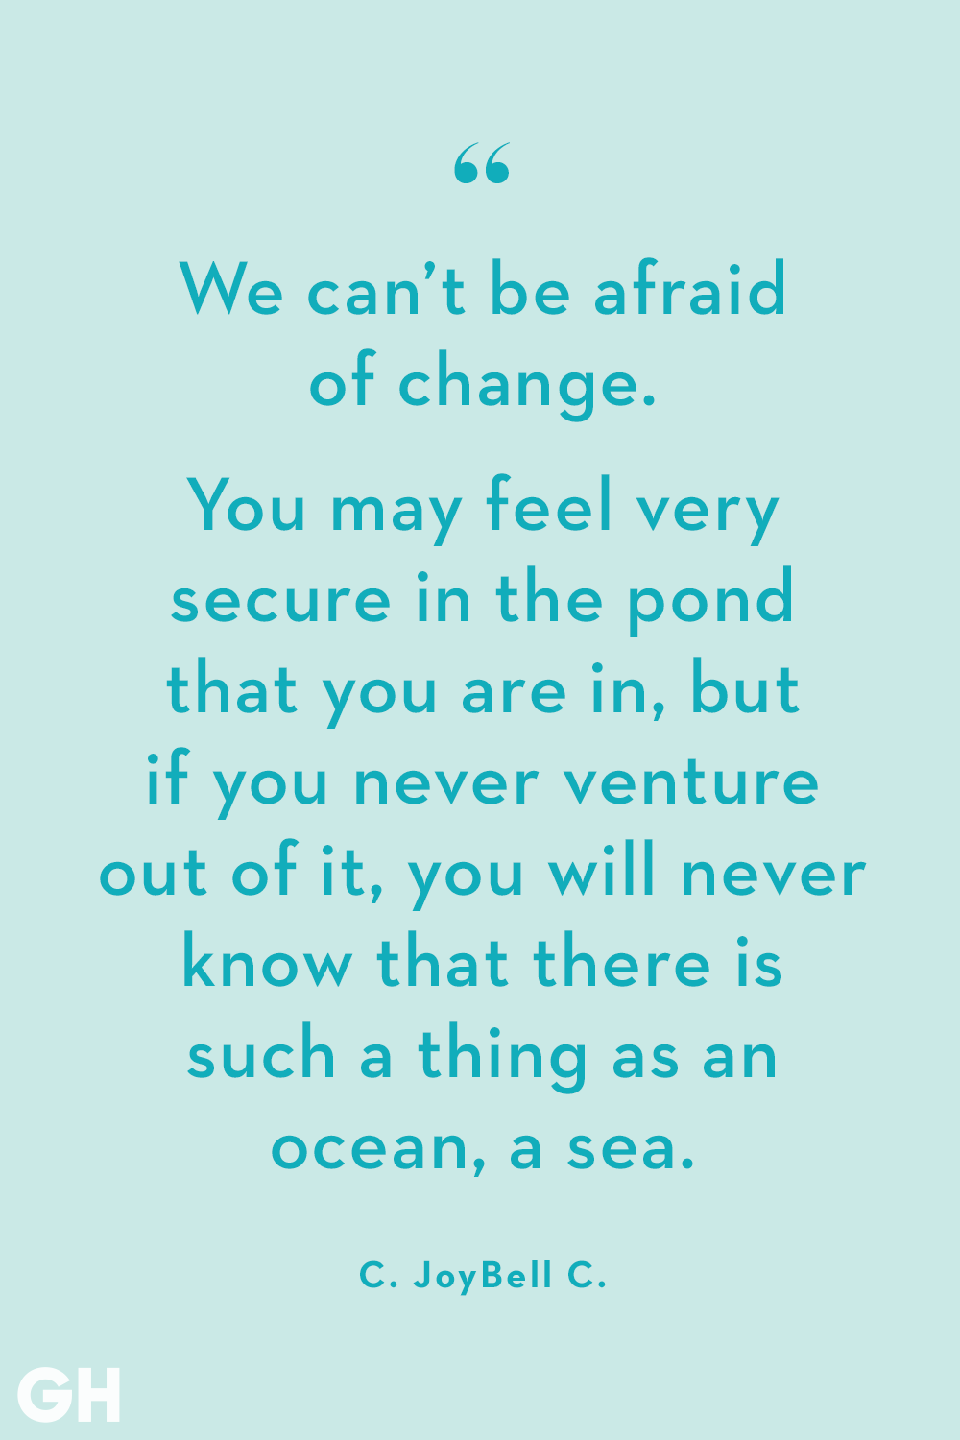 <p>We can't be afraid of change. You may feel very secure in the pond that you are in, but if you never venture out of it, you will never know that there is such a thing as an ocean, a sea.</p>